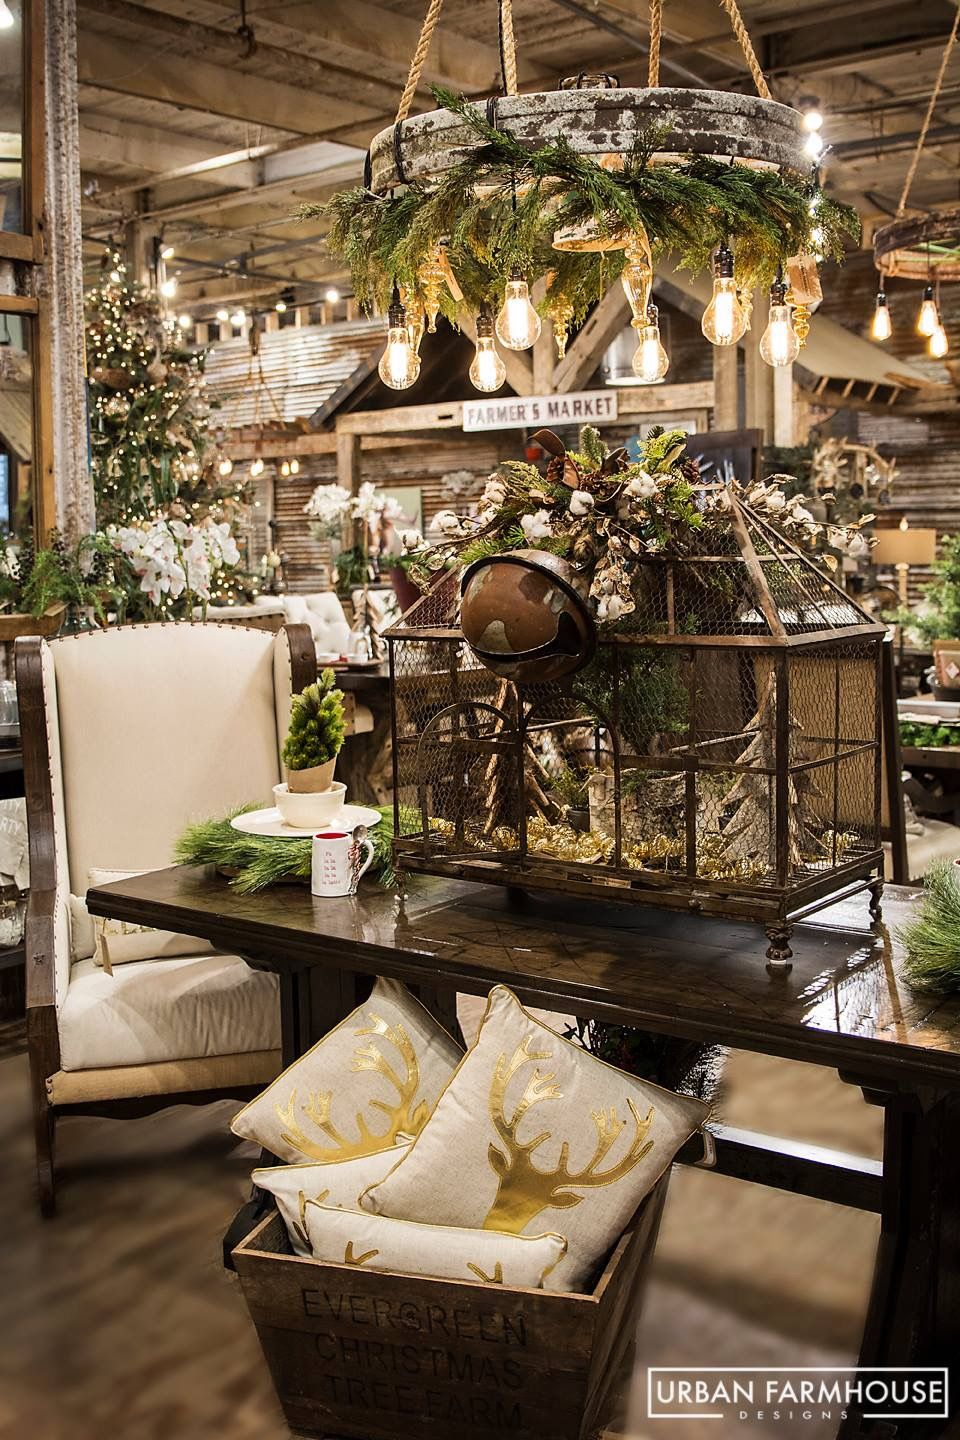 Pin by Angie Hynd on nest   Urban farmhouse designs ...